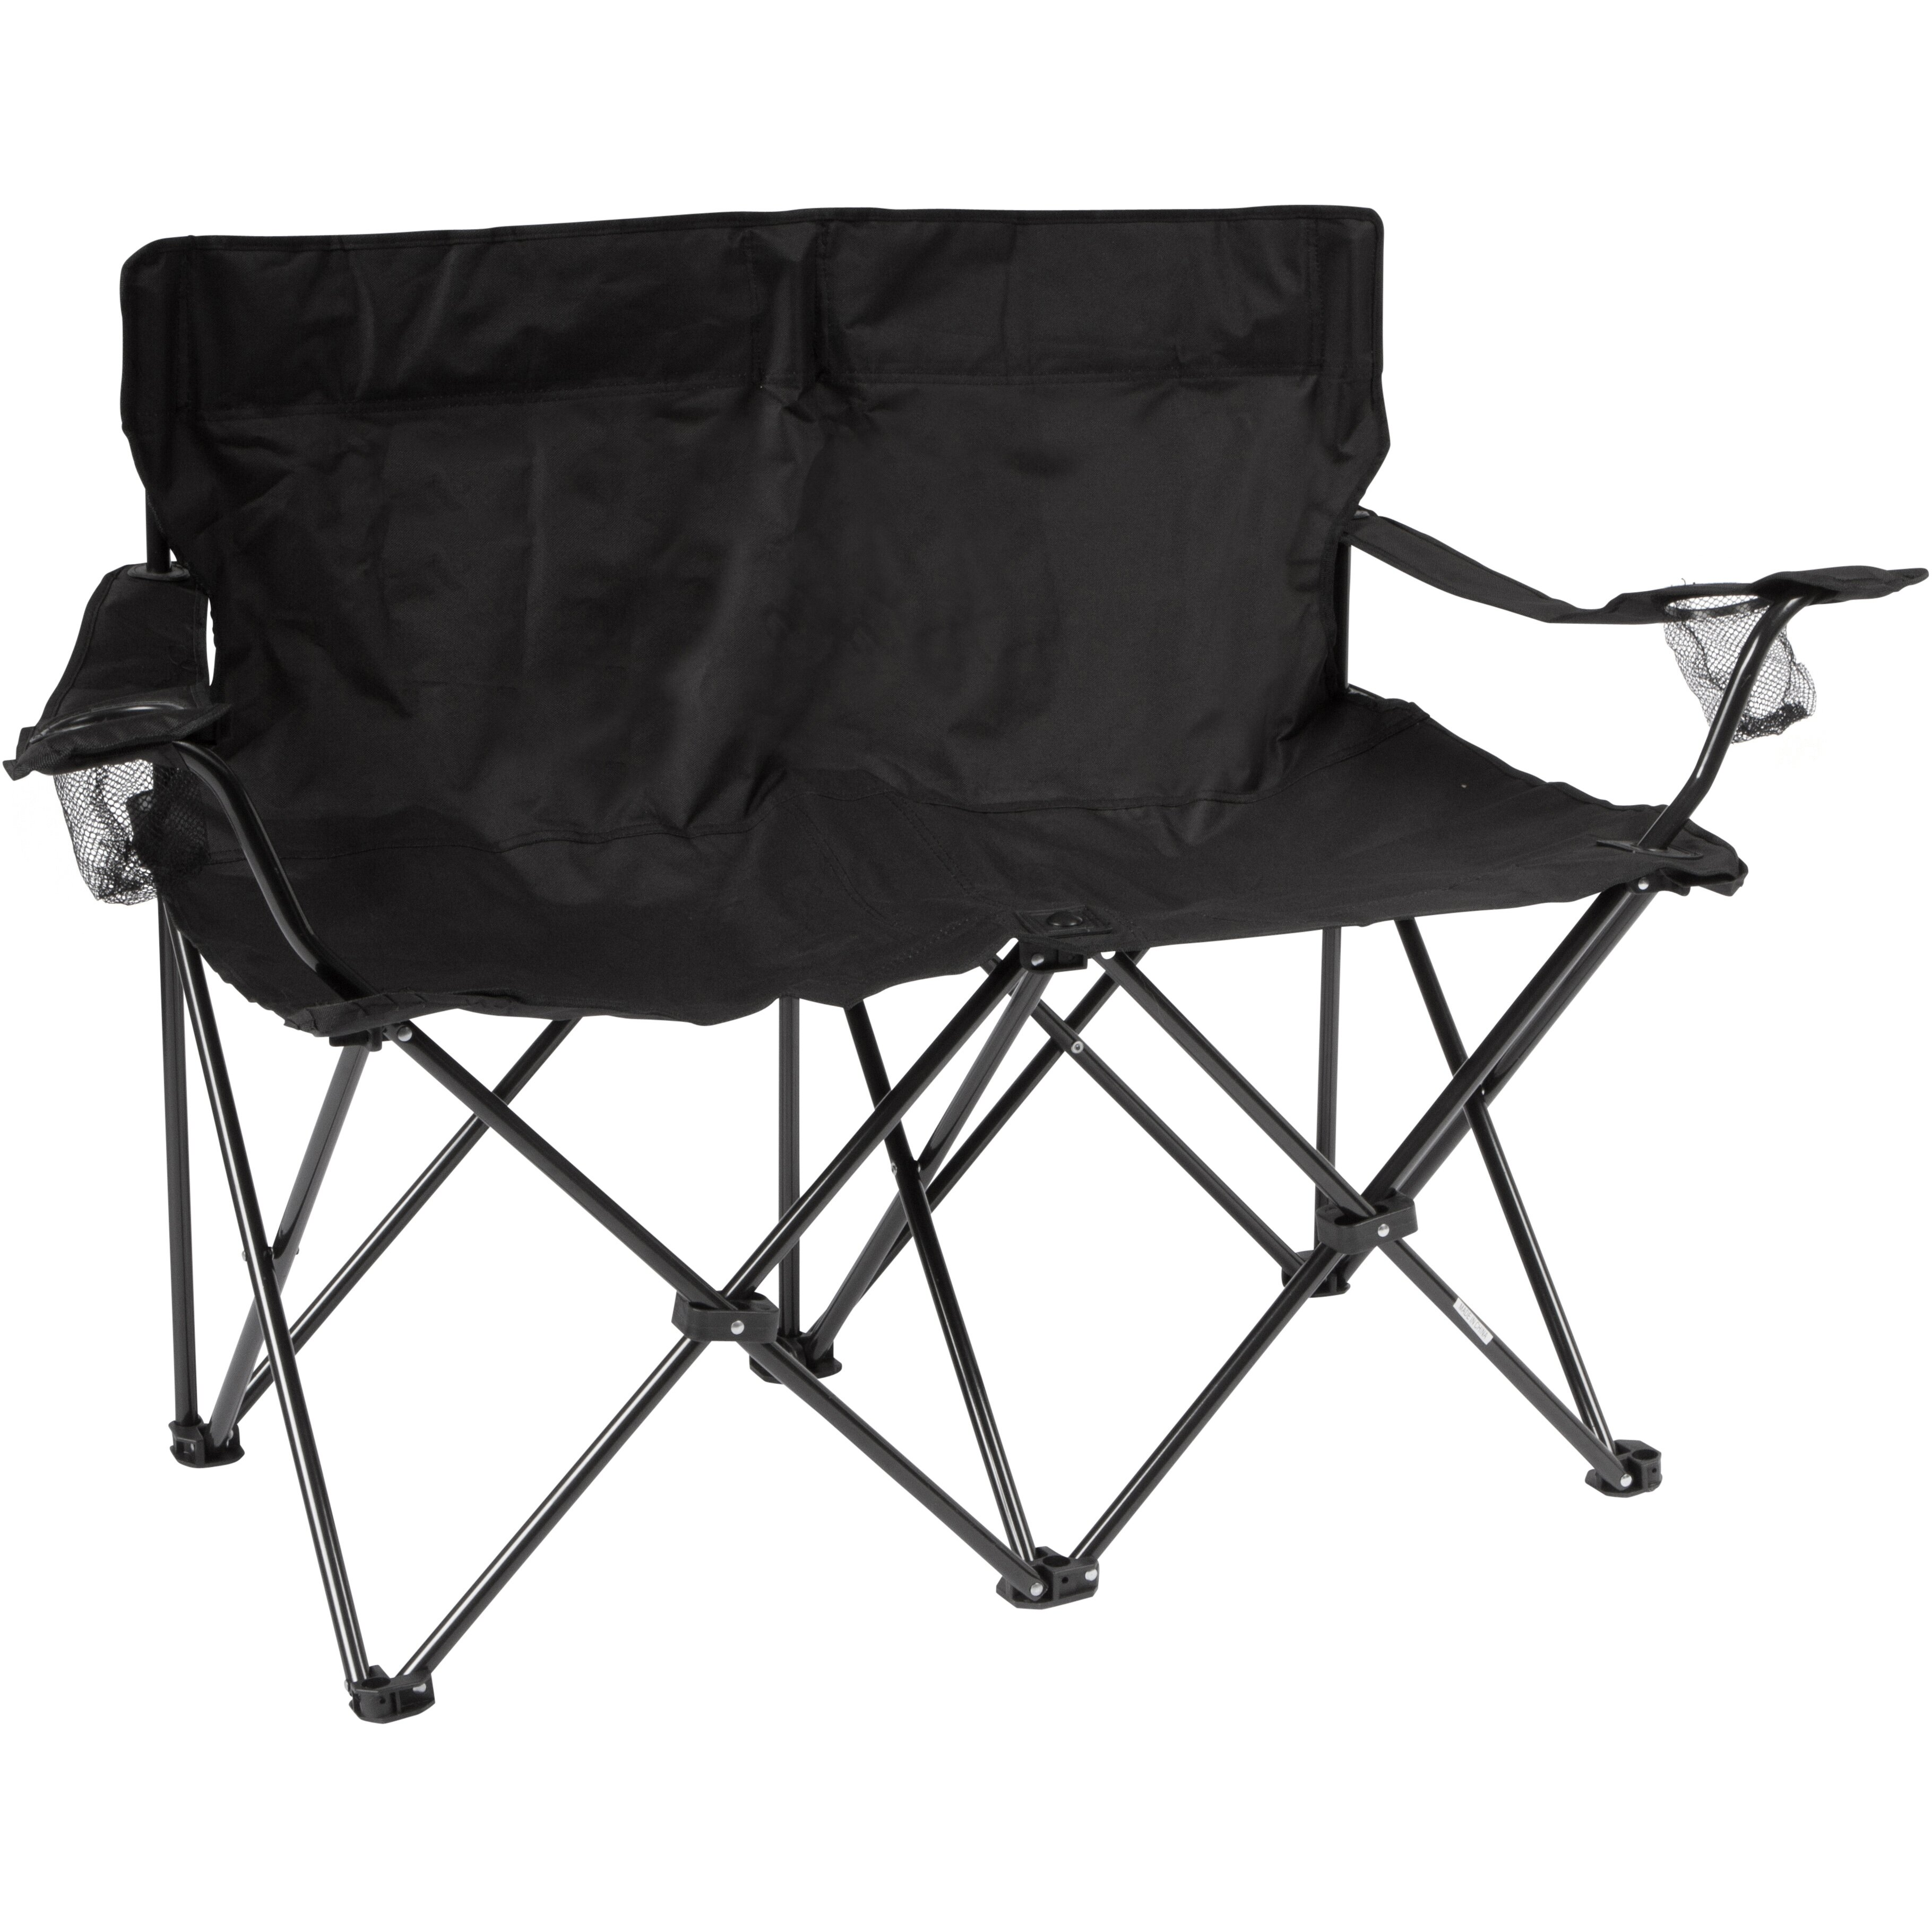 Trademark Innovations Loveseat Style Double Camp Chair With Steel Frame Reviews Wayfair